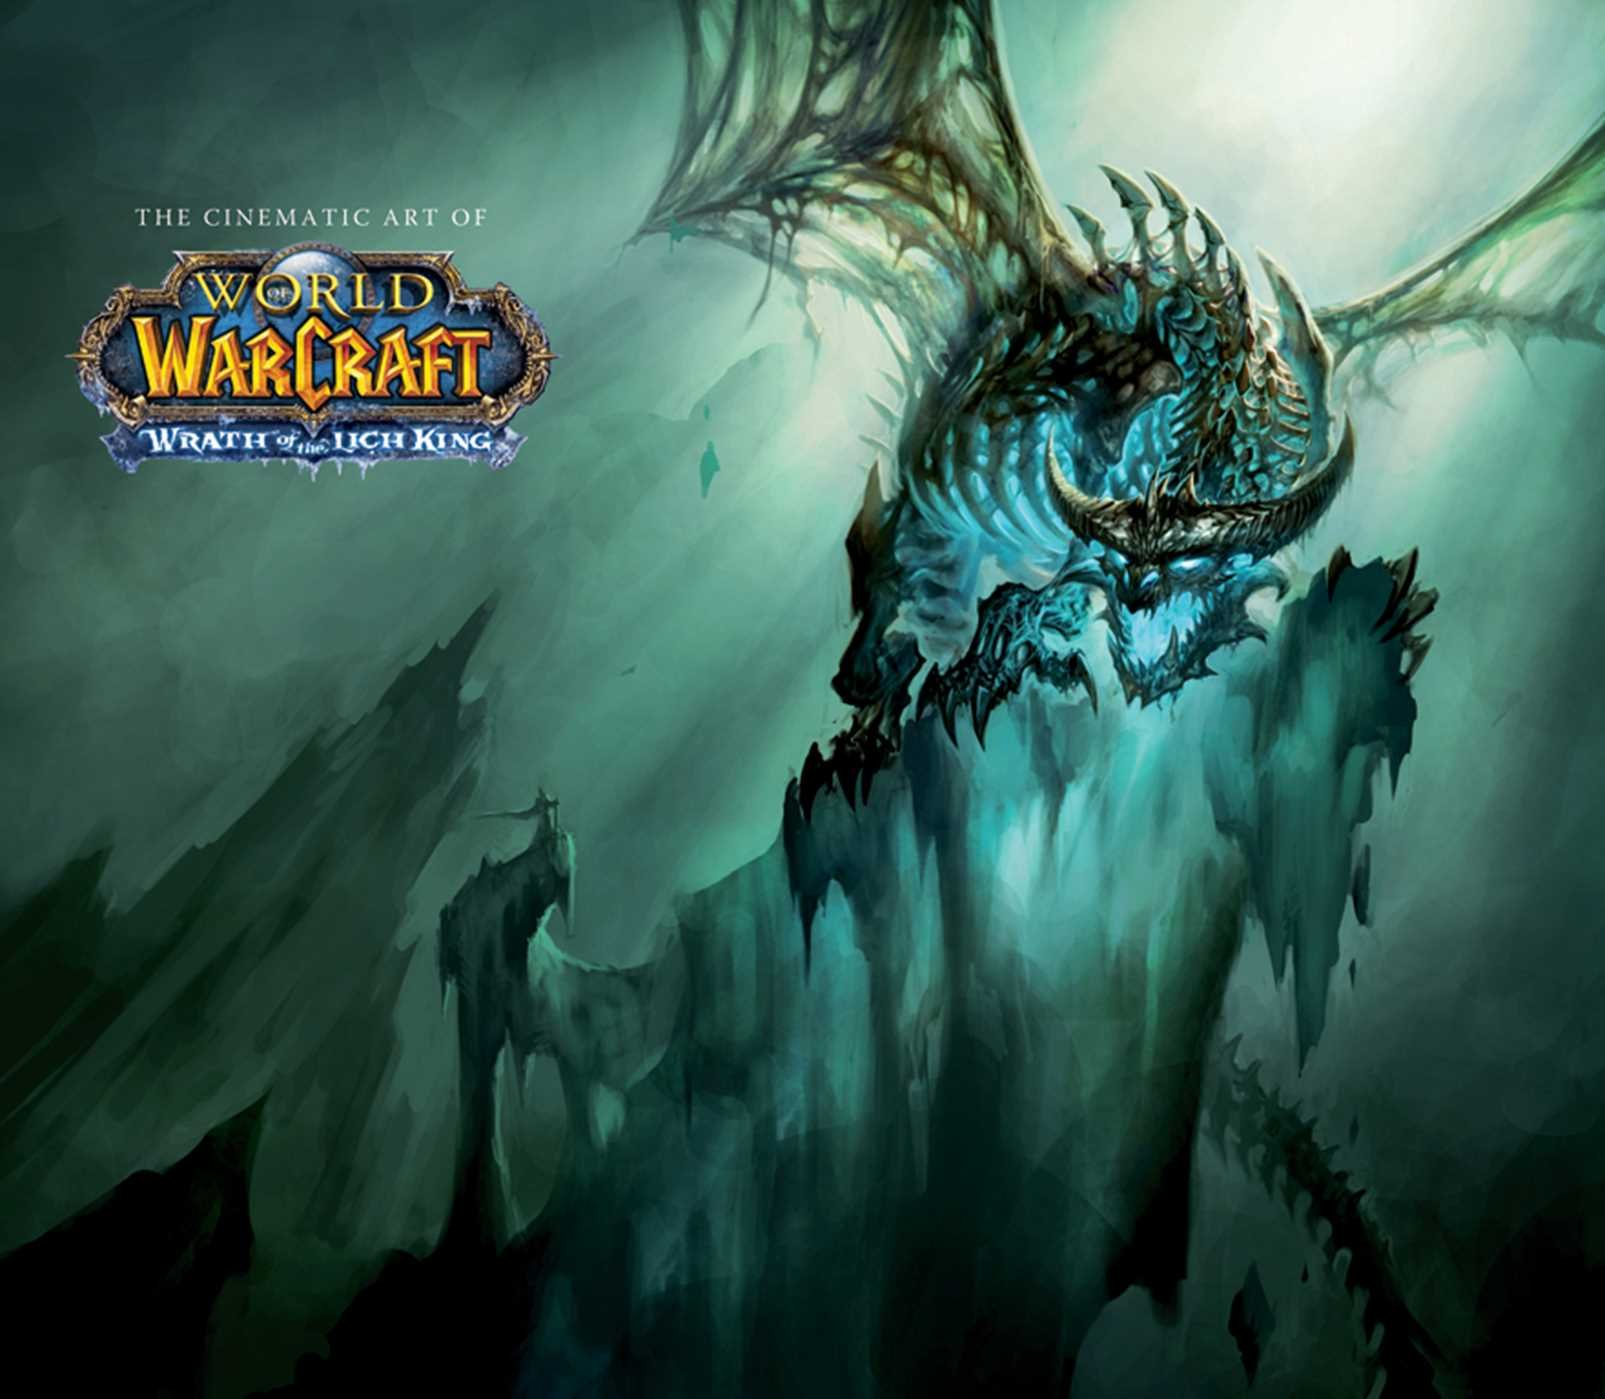 amazon the cinematic art of world of warcraft wrath of the lich